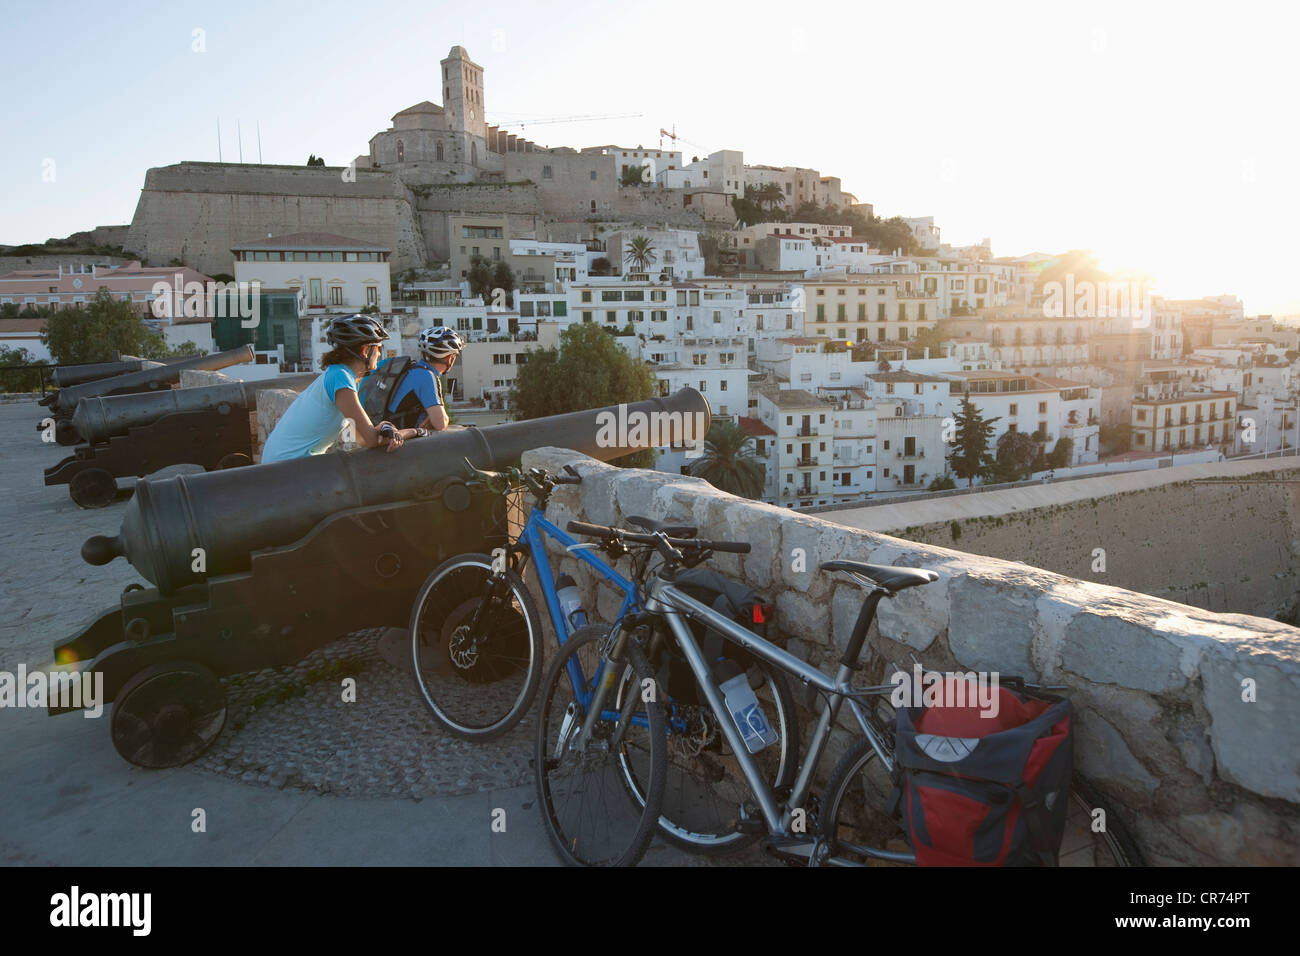 Spain, Ibiza, Eivissa, Mature man and mid adult woman with bicycle - Stock Image